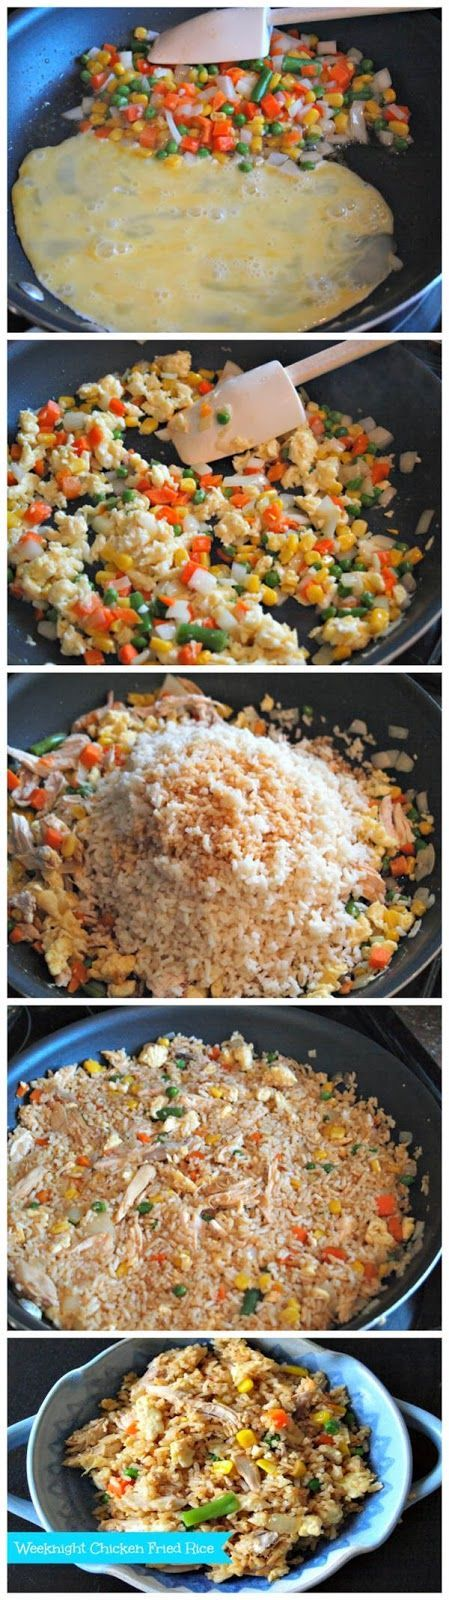 3 cups cooked white rice 3 tbsp. sesame oil 1 cup frozen vegetables (like peas and carrots) 1 small onion, chopped 2 cloves garlic, minced 2 eggs, beaten lightly 1 cup cooked chicken, diced or shredded 1/4 cup soy sauce -